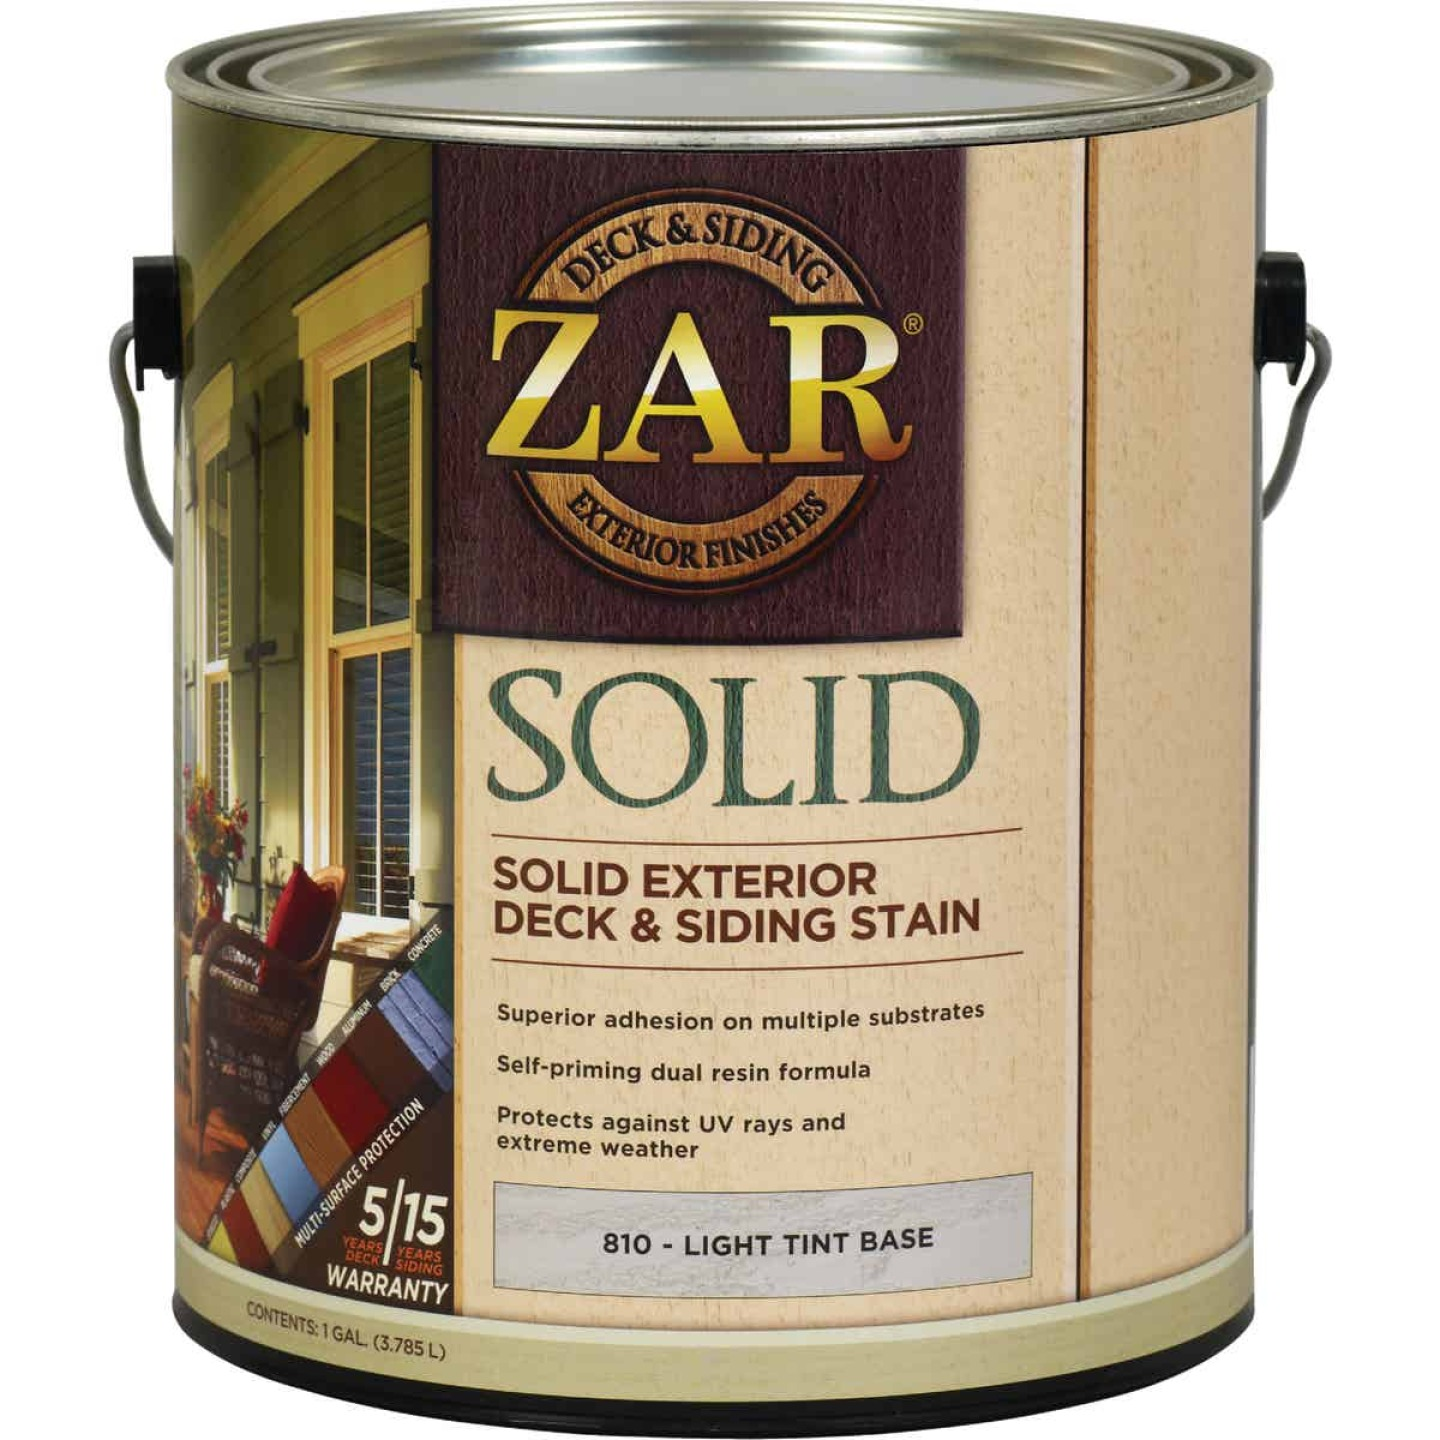 ZAR Solid Deck & Siding Stain, Light Tint Base, 1 Gal. Image 1